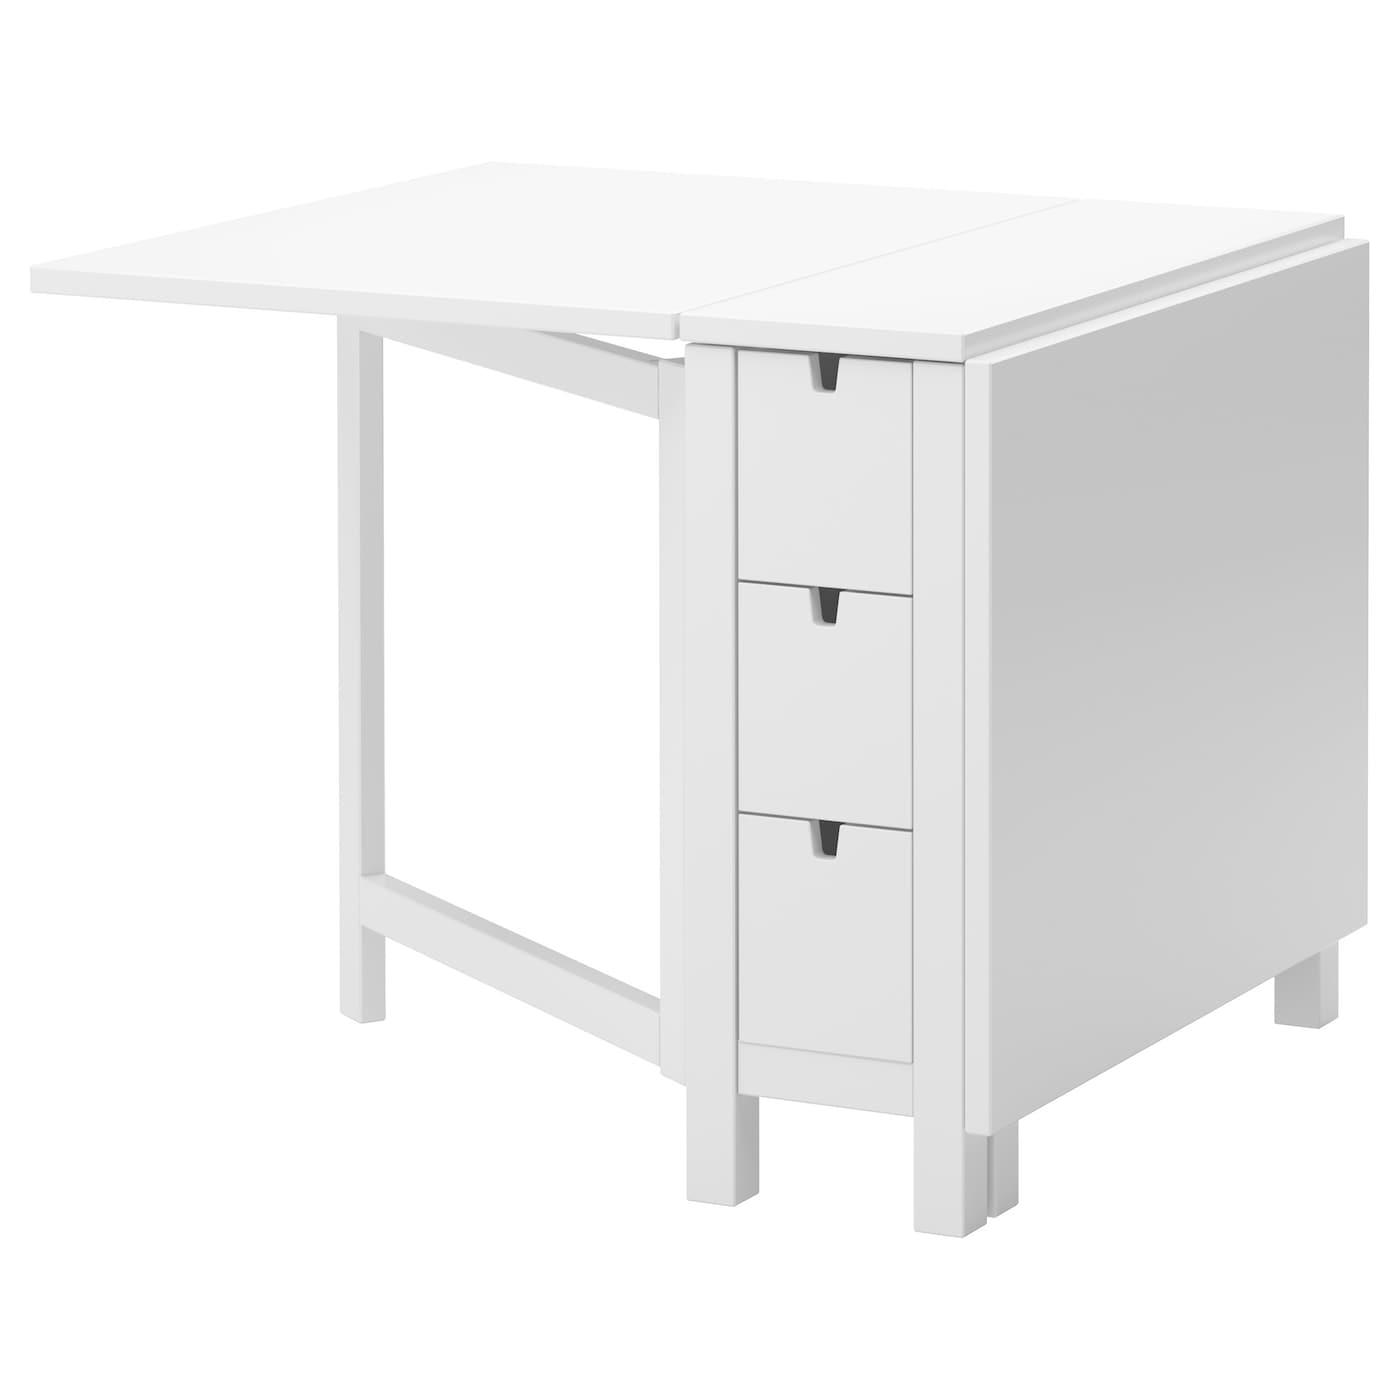 norden gateleg table white 26 89 152 x 80 cm ikea